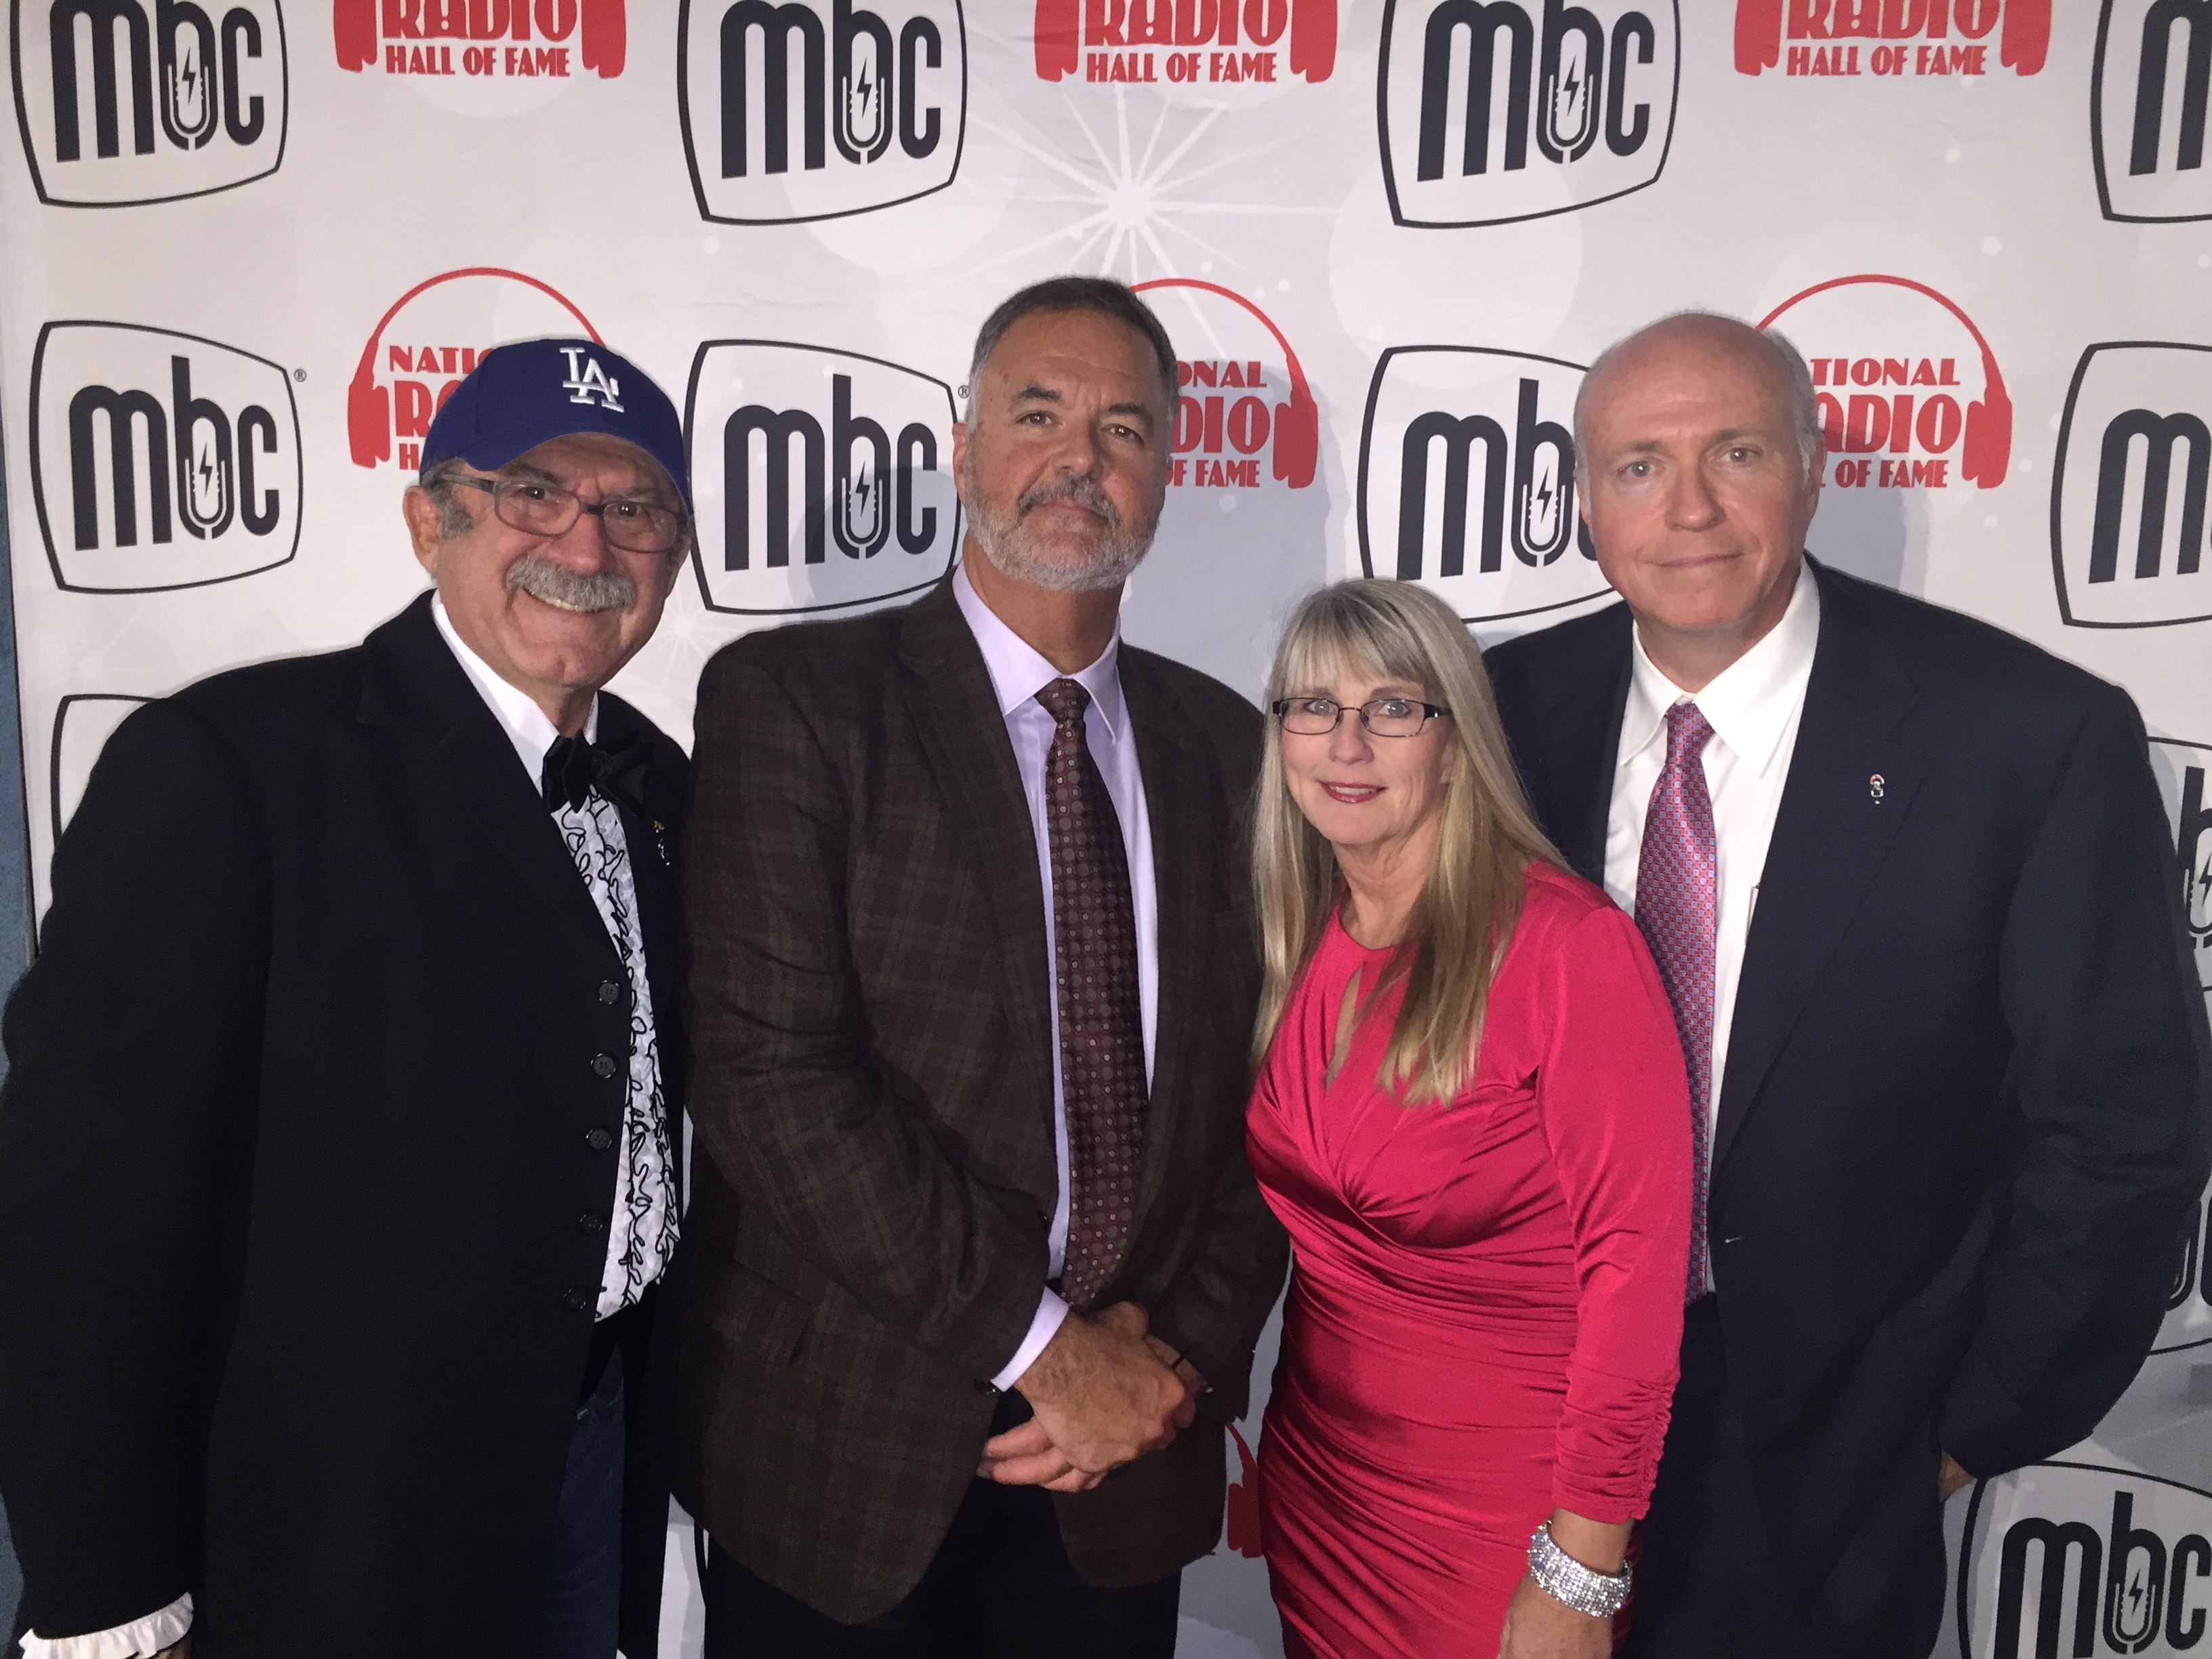 Kristi Lee with Tom Griswold, Chick McGee, and Josh Arnold.